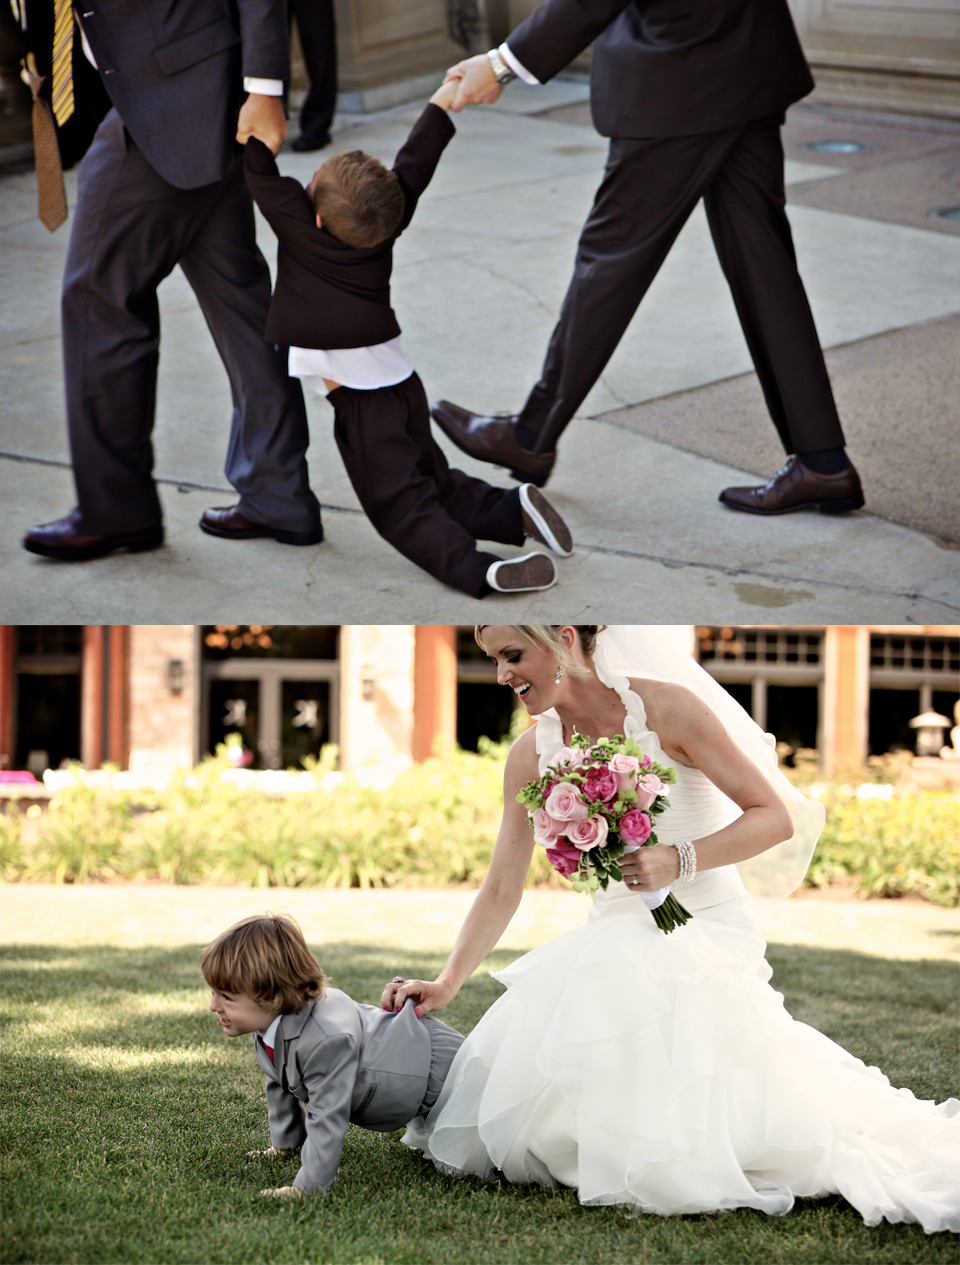 Funny Wedding Photos Escape From Wedding Planning Stress Unforgettable Ring Bearers Dragged Down